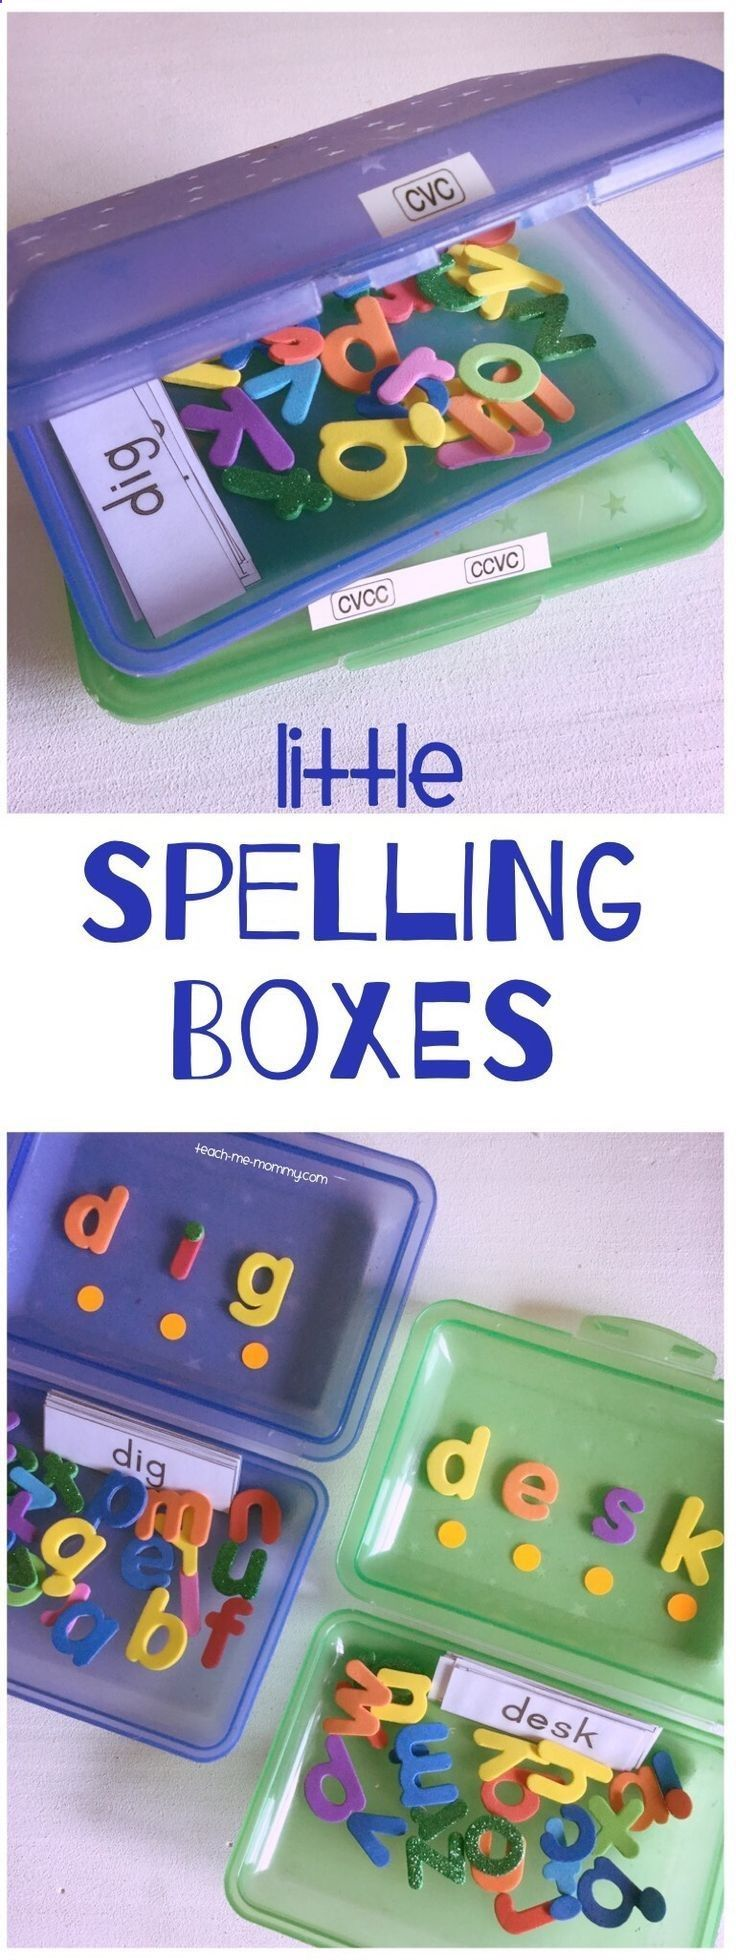 These DIY spelling boxes are perfect for kids working on sight words at home or in the classroom.http://www.teach-me-mommy.com/2017/03/little-spelling-box.html